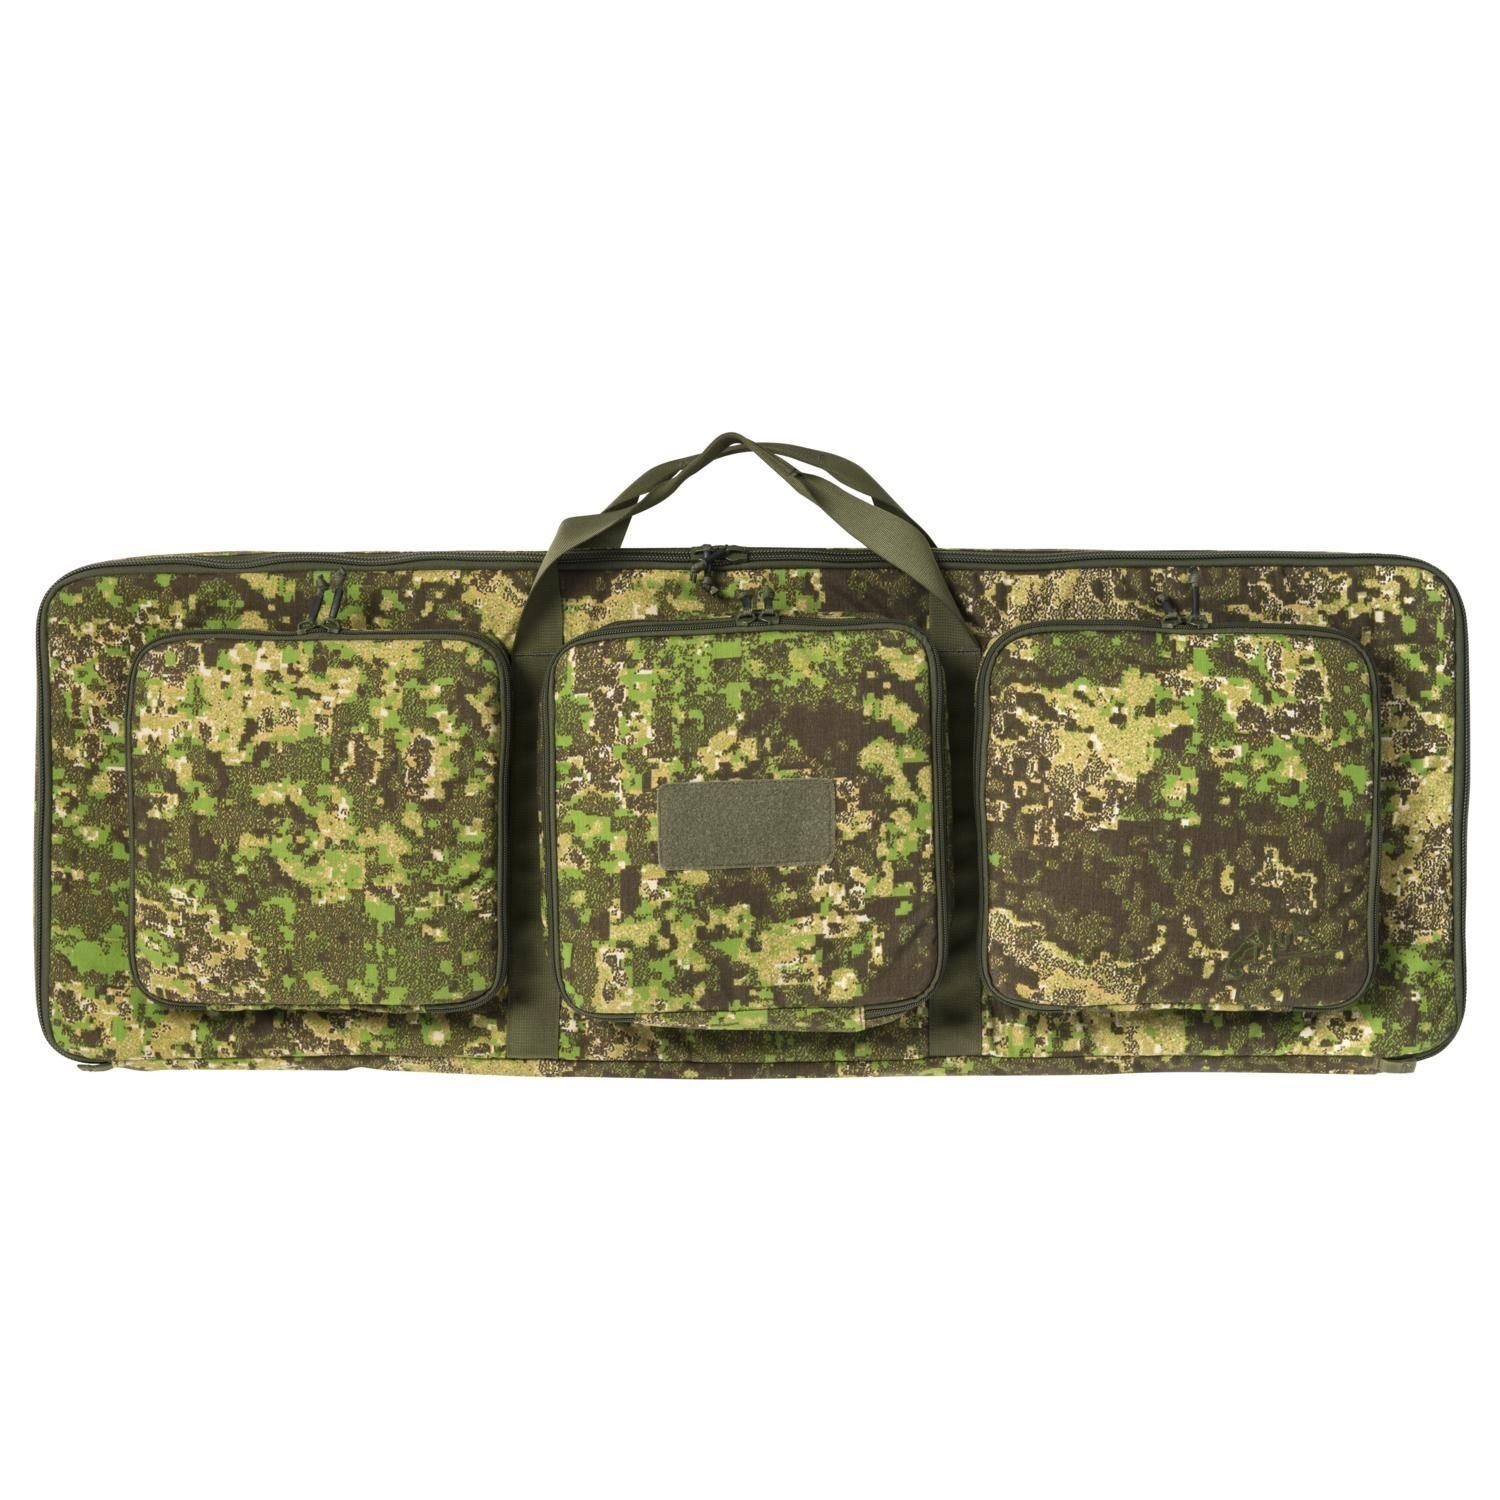 Puzdro na pušku RIFLE BAG 18® PENCOTT® GREENZONE™